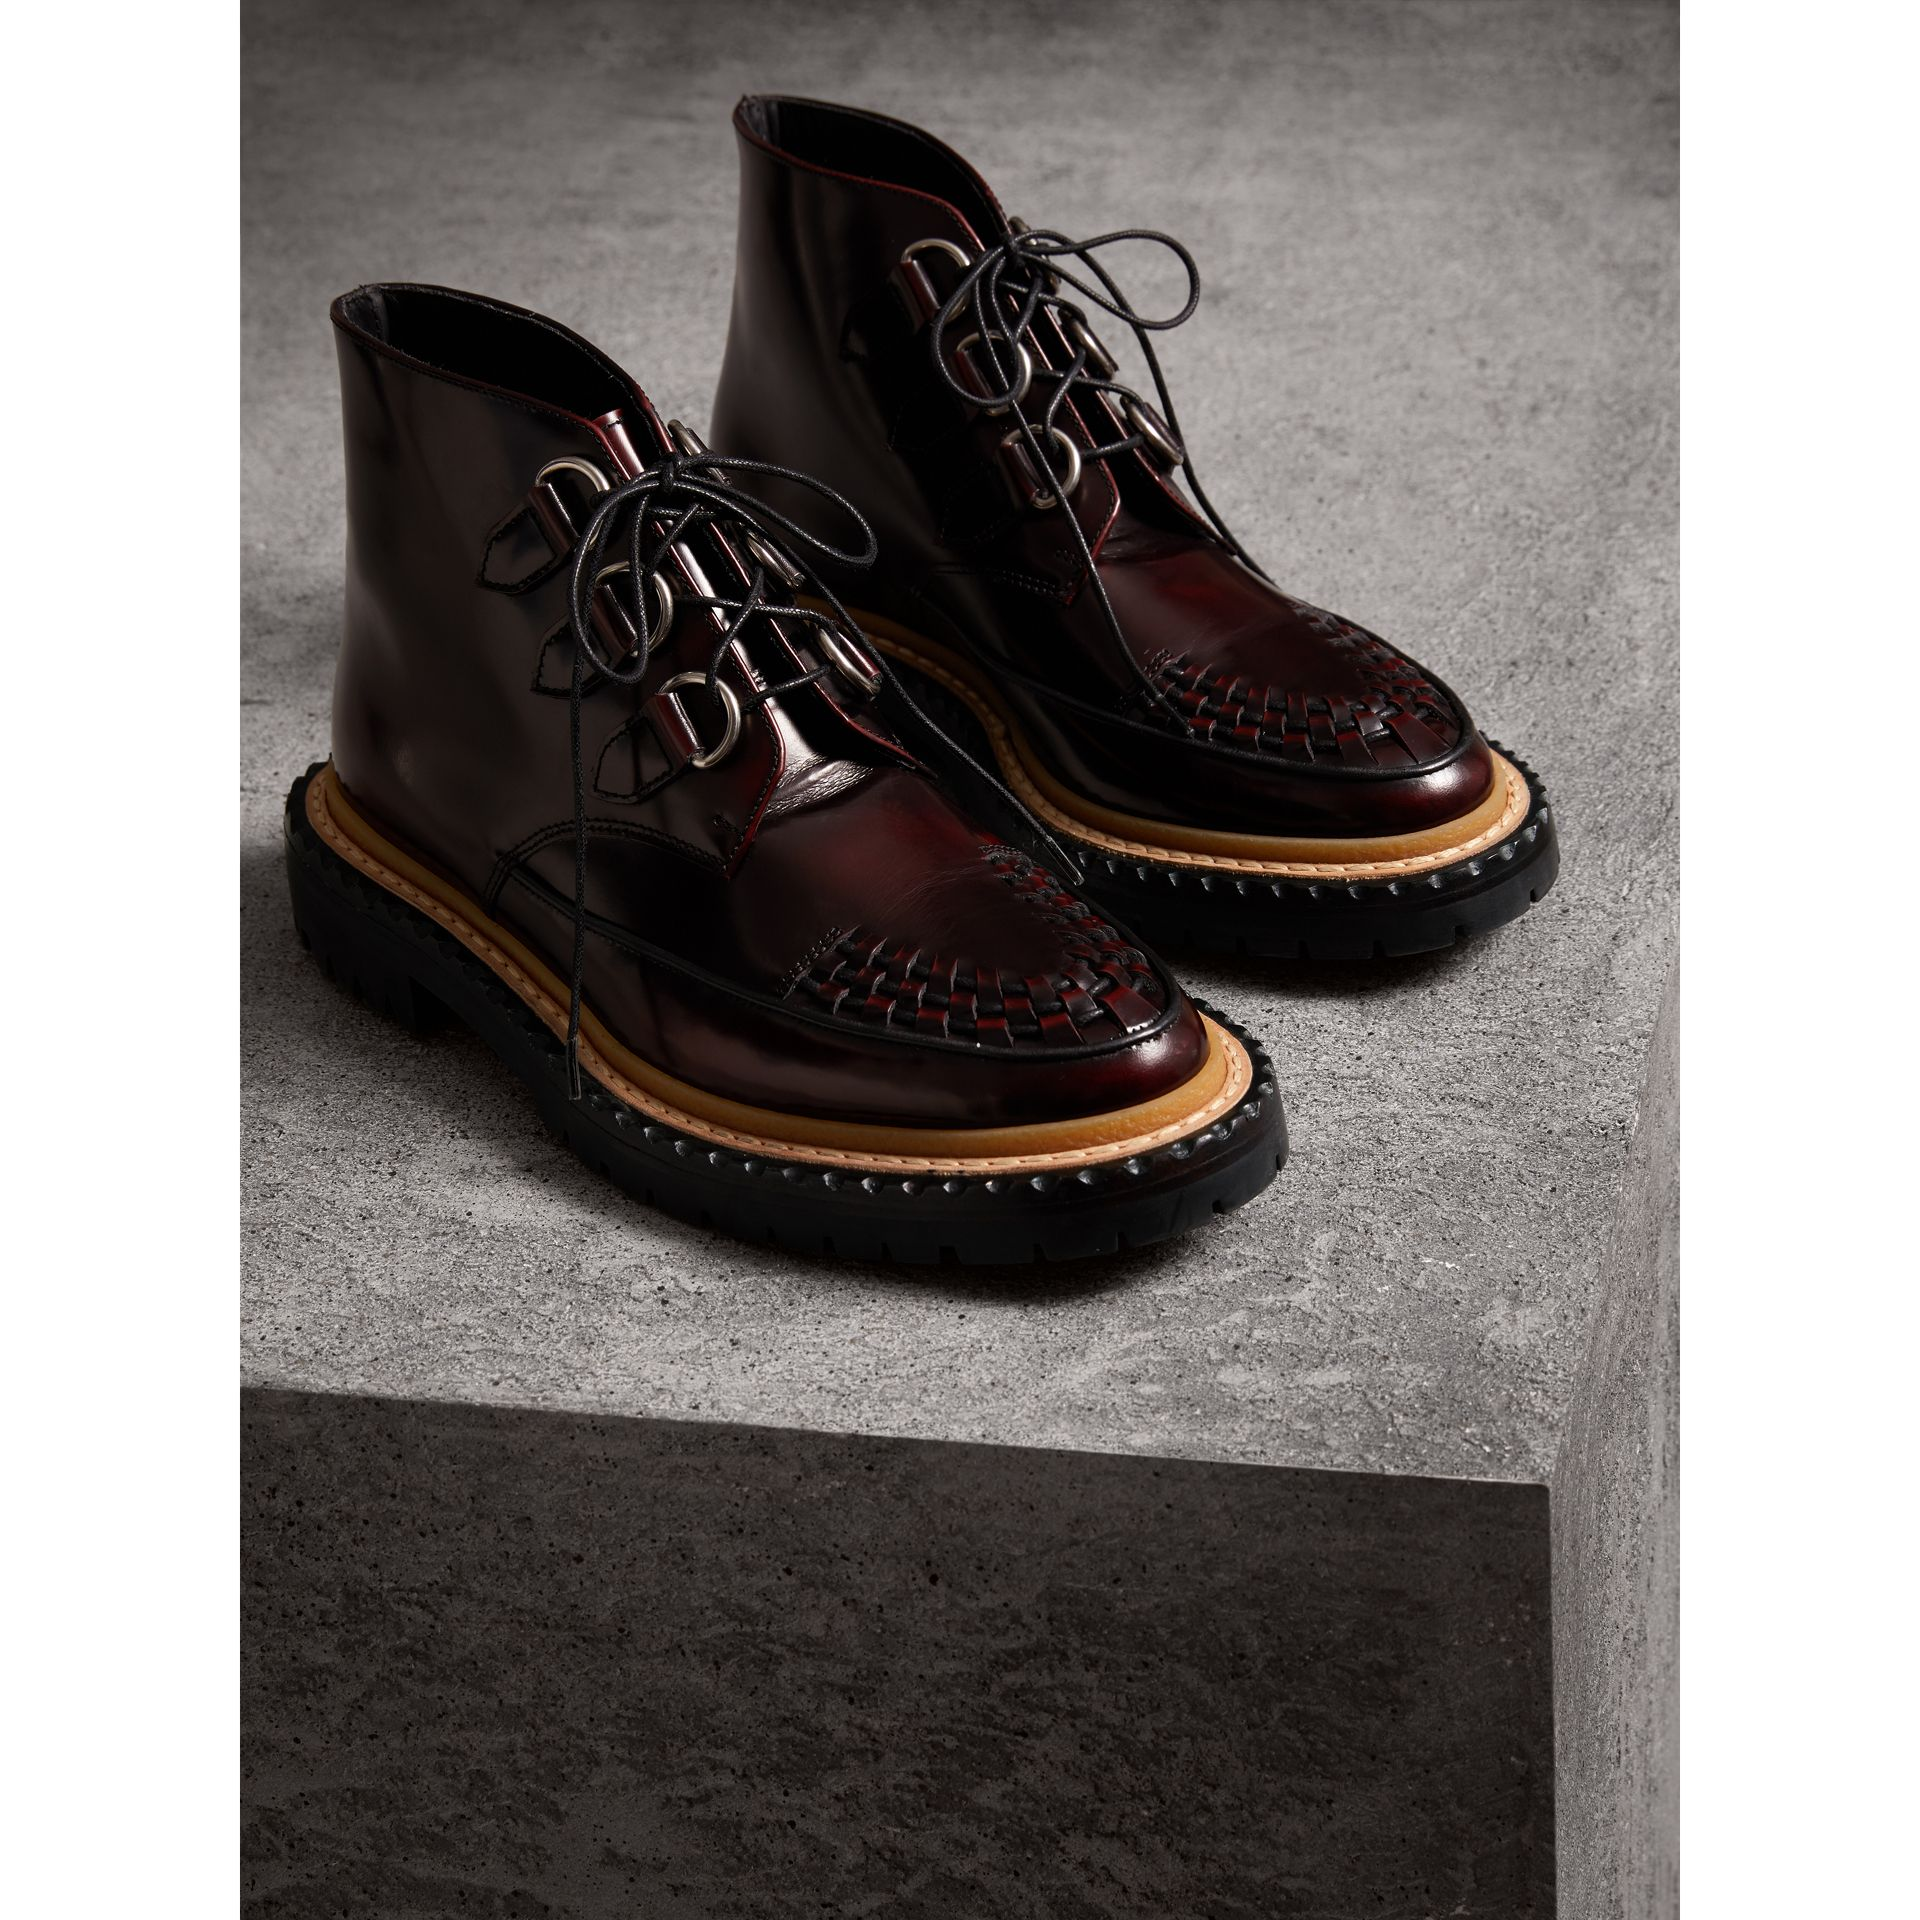 Woven-toe Polished Leather Ankle Boots in Bordeaux - Women | Burberry - gallery image 3